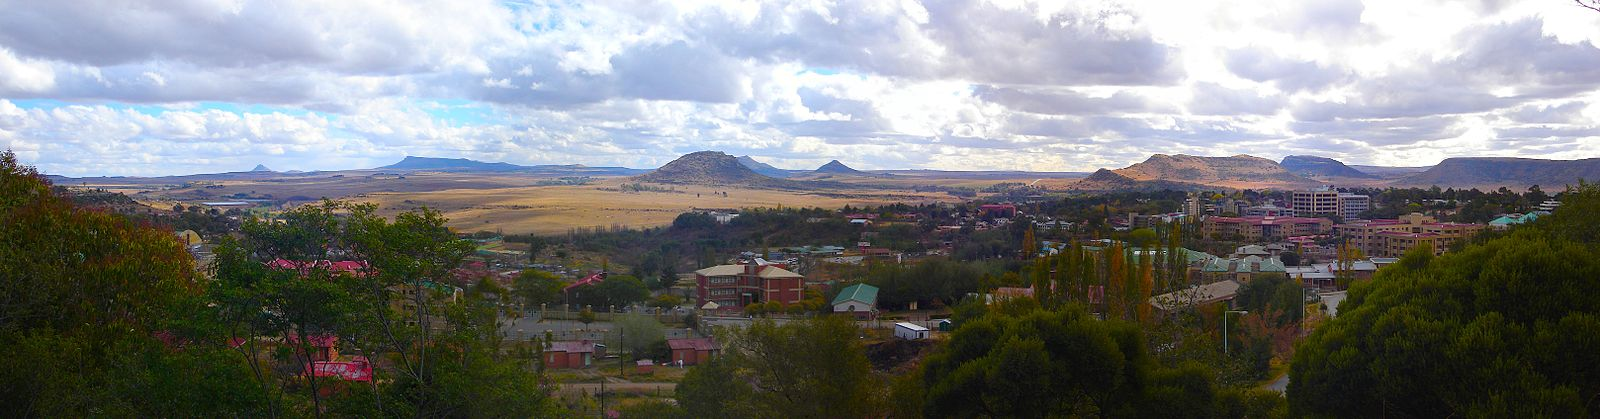 Vista panorâmica de Maseru, capital do país. - Lesoto